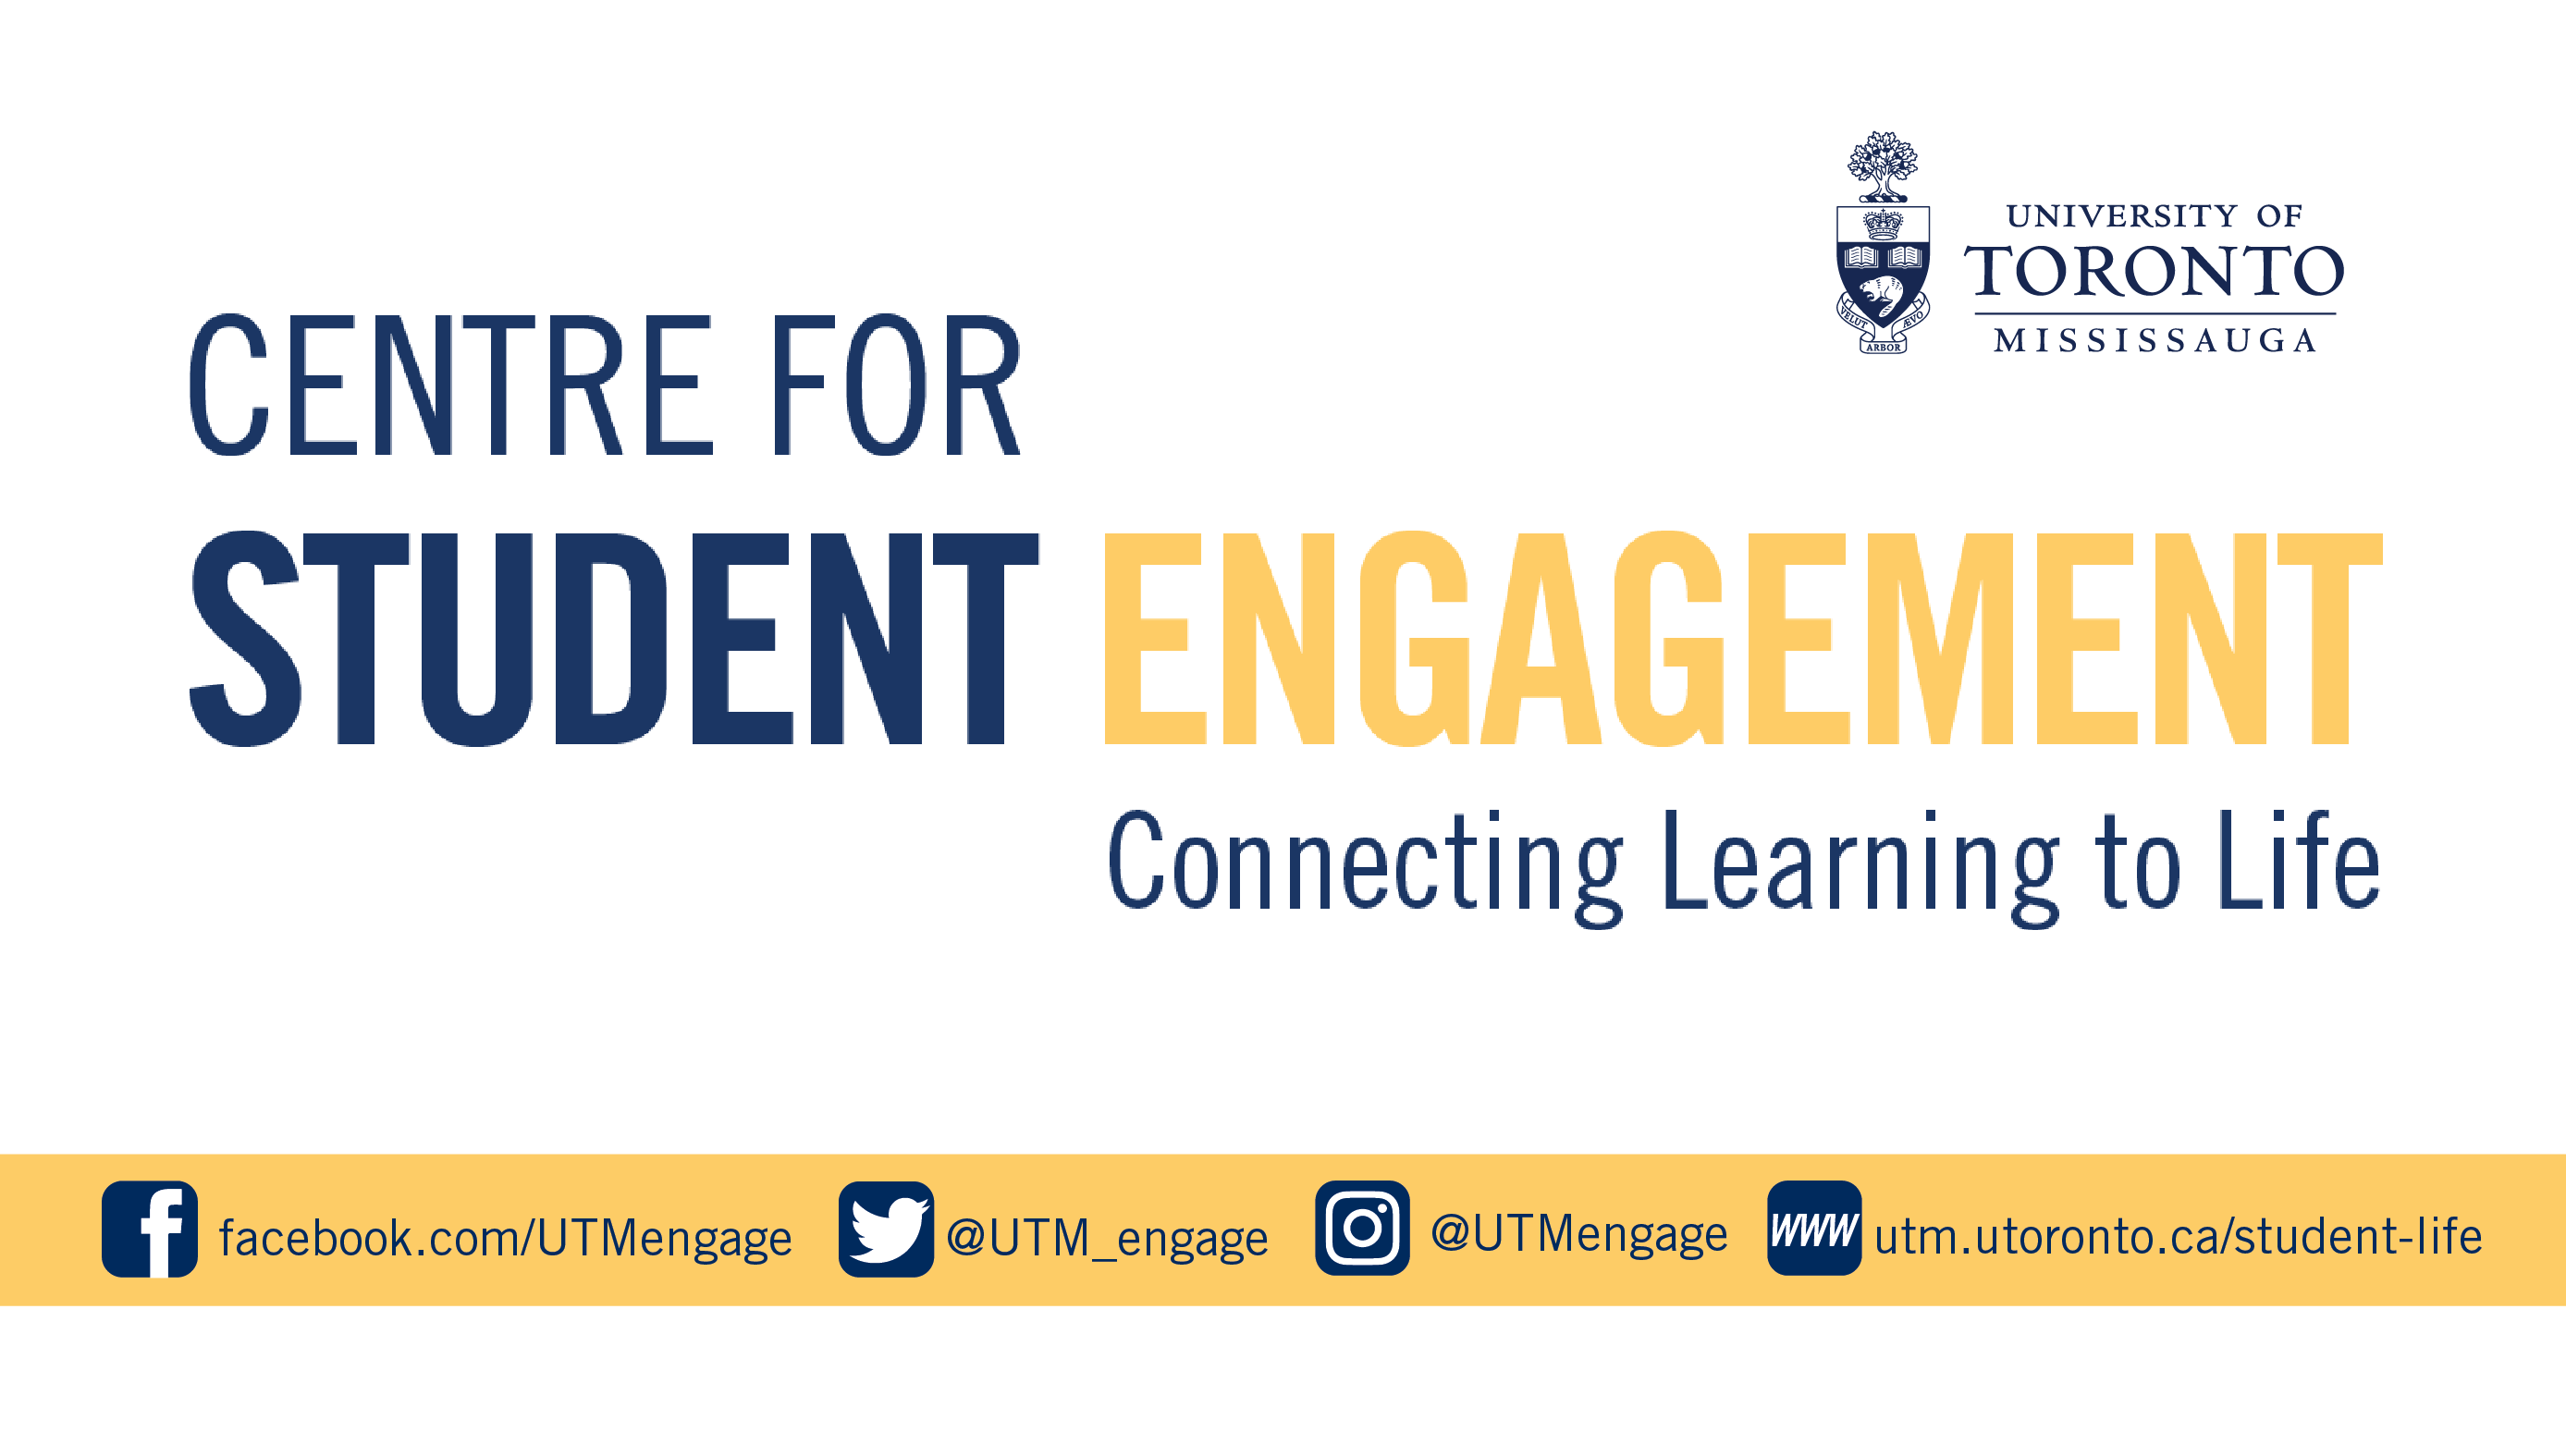 Centre for Student Engagement. Connecting learning to life. facebook.com/utmengage. Twitter @UTM_engage. Instagram @UTMengage. www.utoronto.ca/student-life